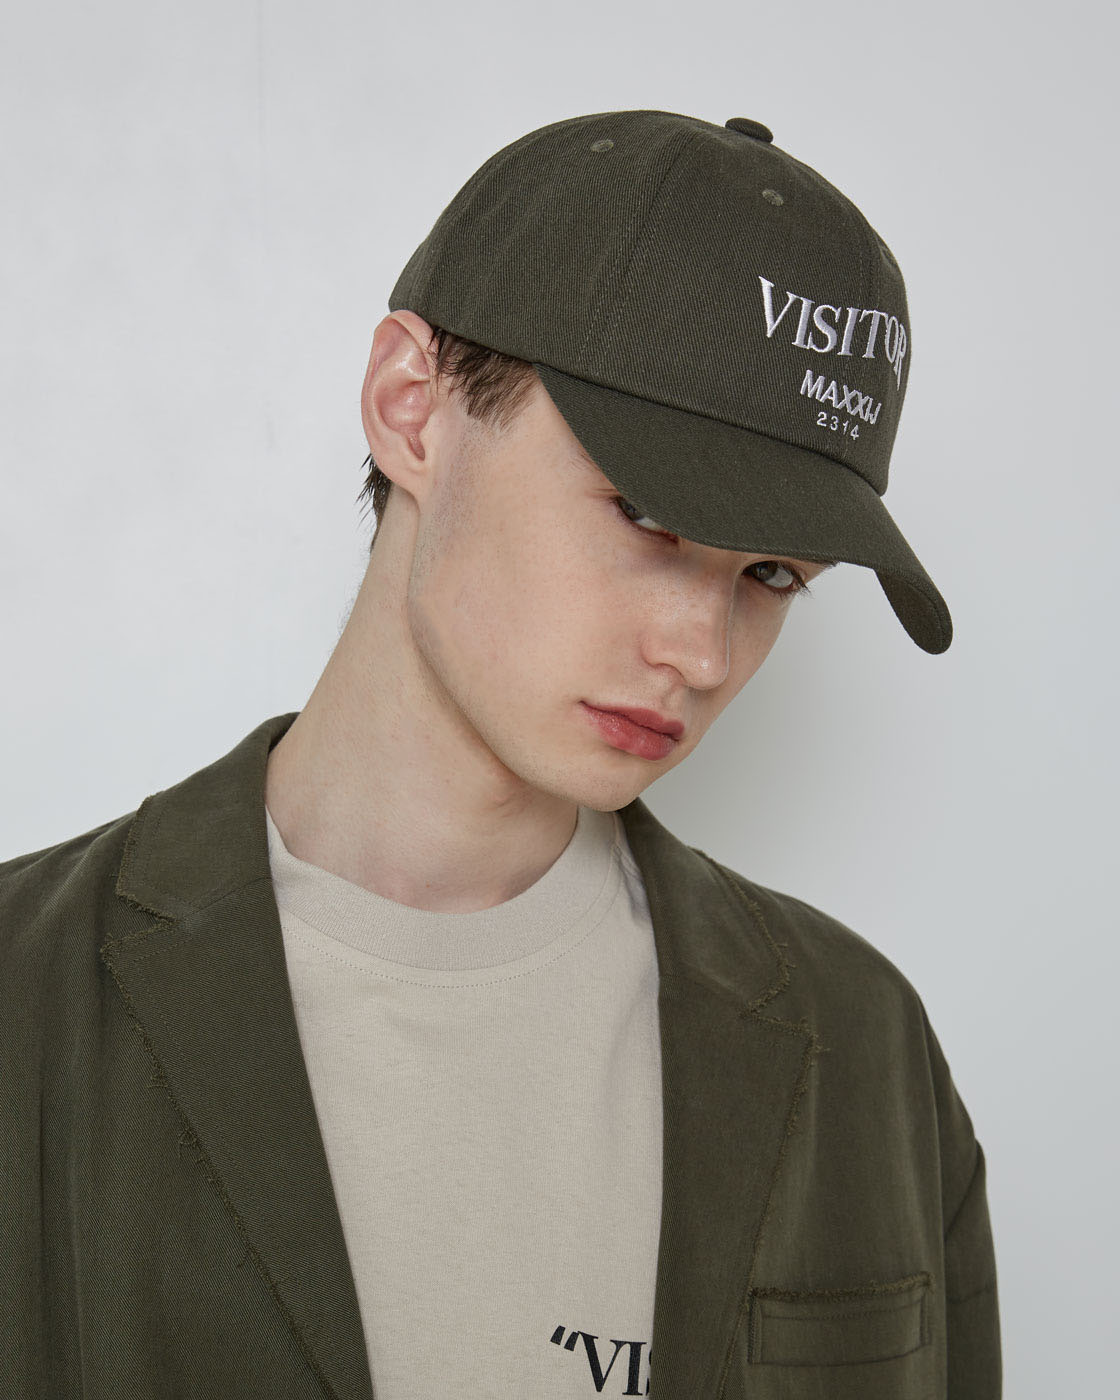 Khaki 'VISITOR' ball cap